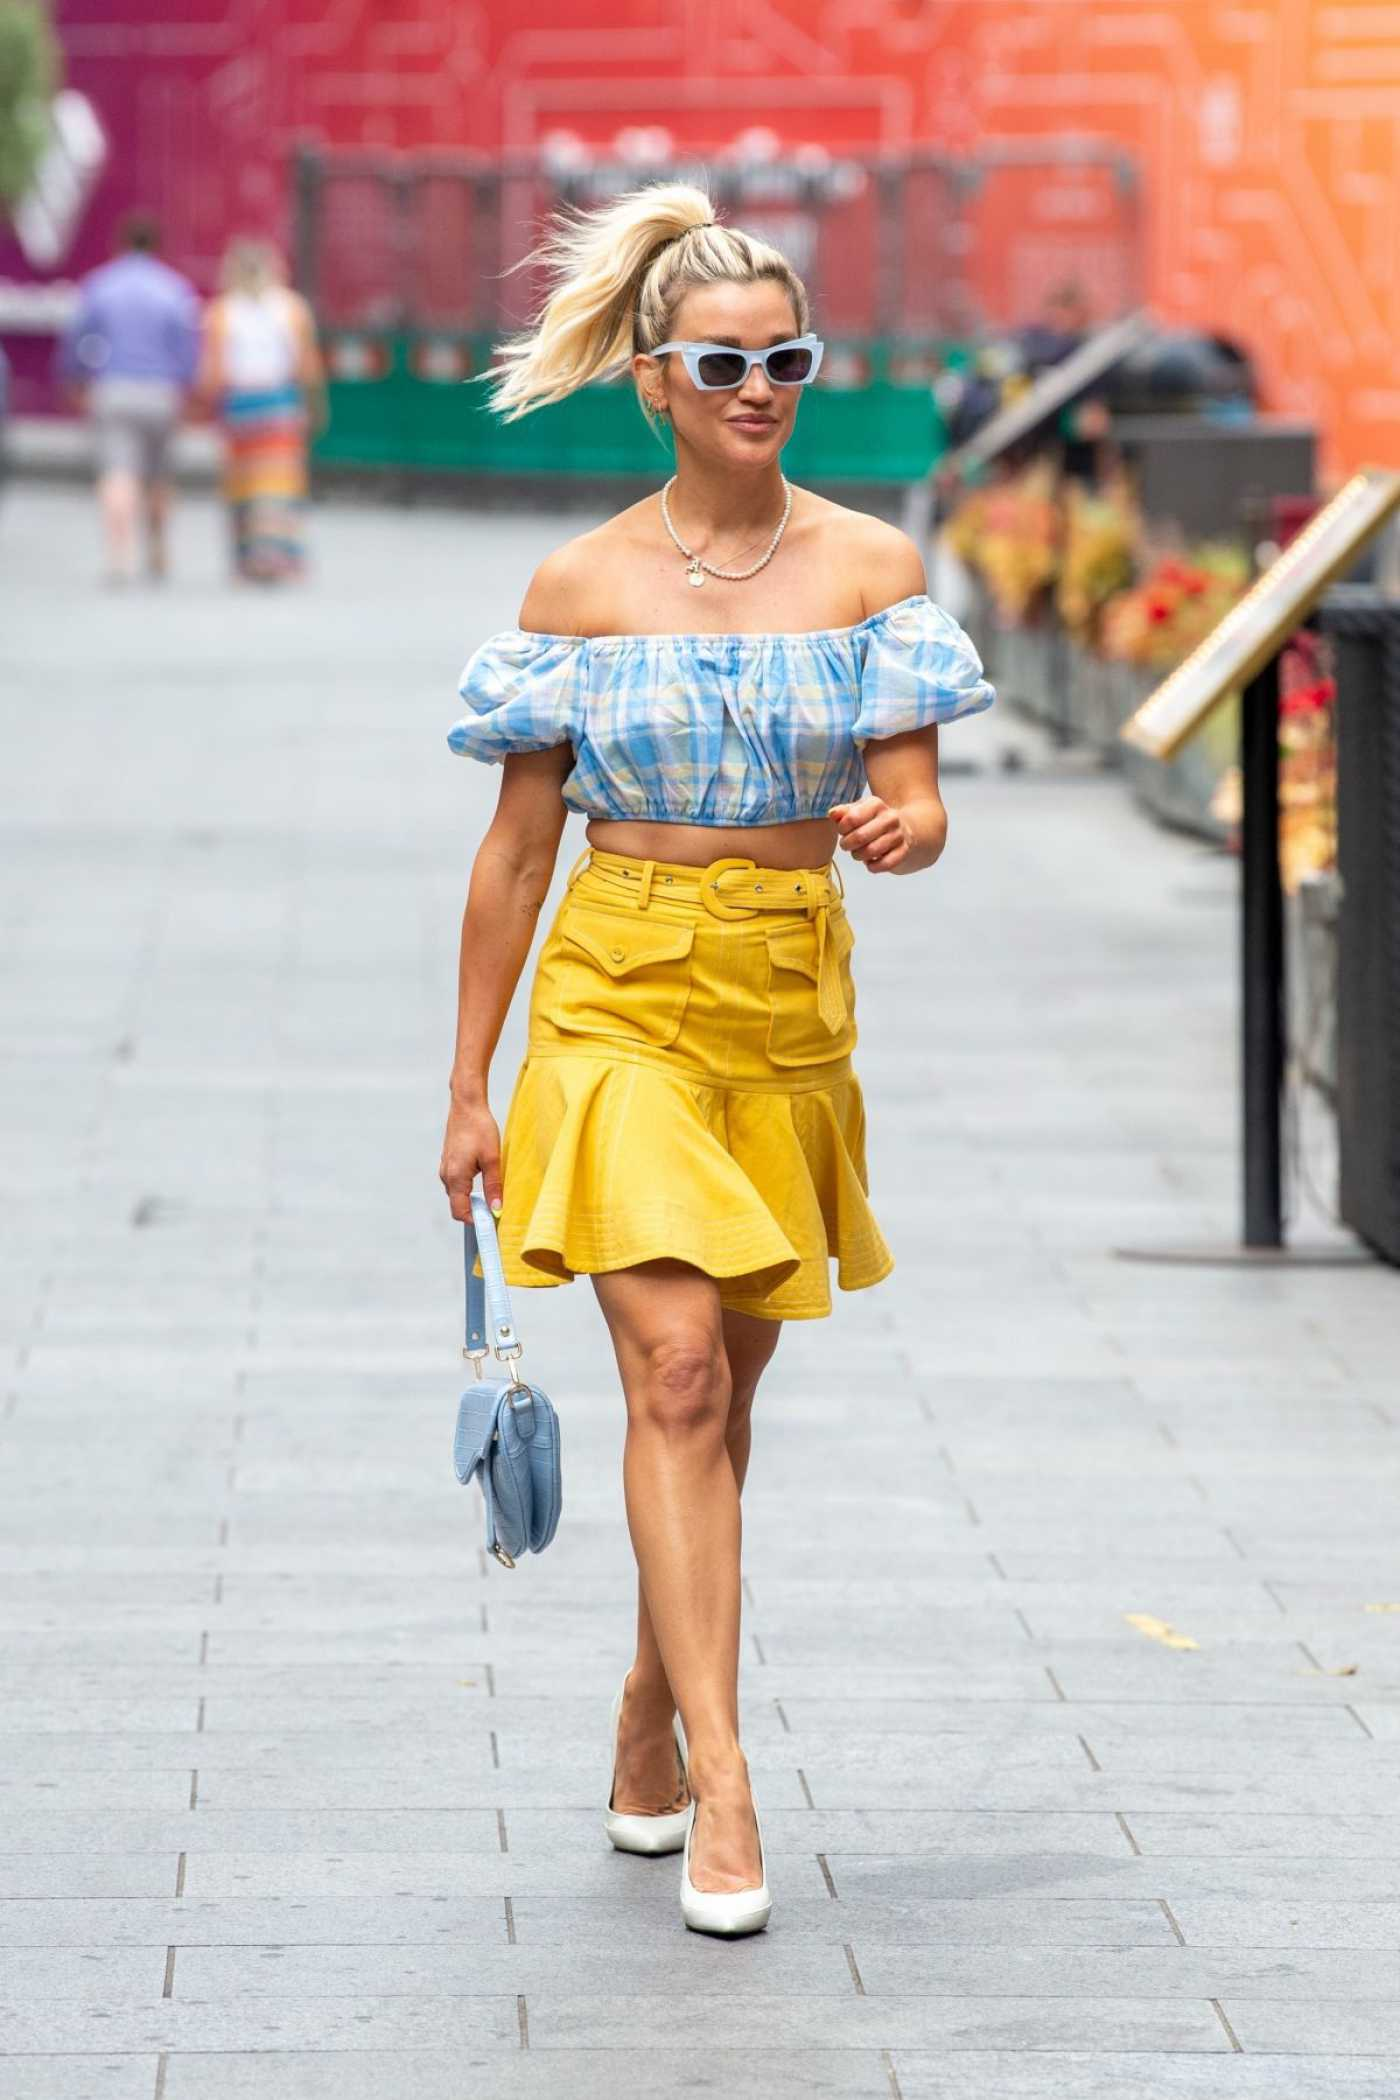 Ashley Roberts in a Yellow Skirt Arrives at the Heart Radio in London 06/11/2021